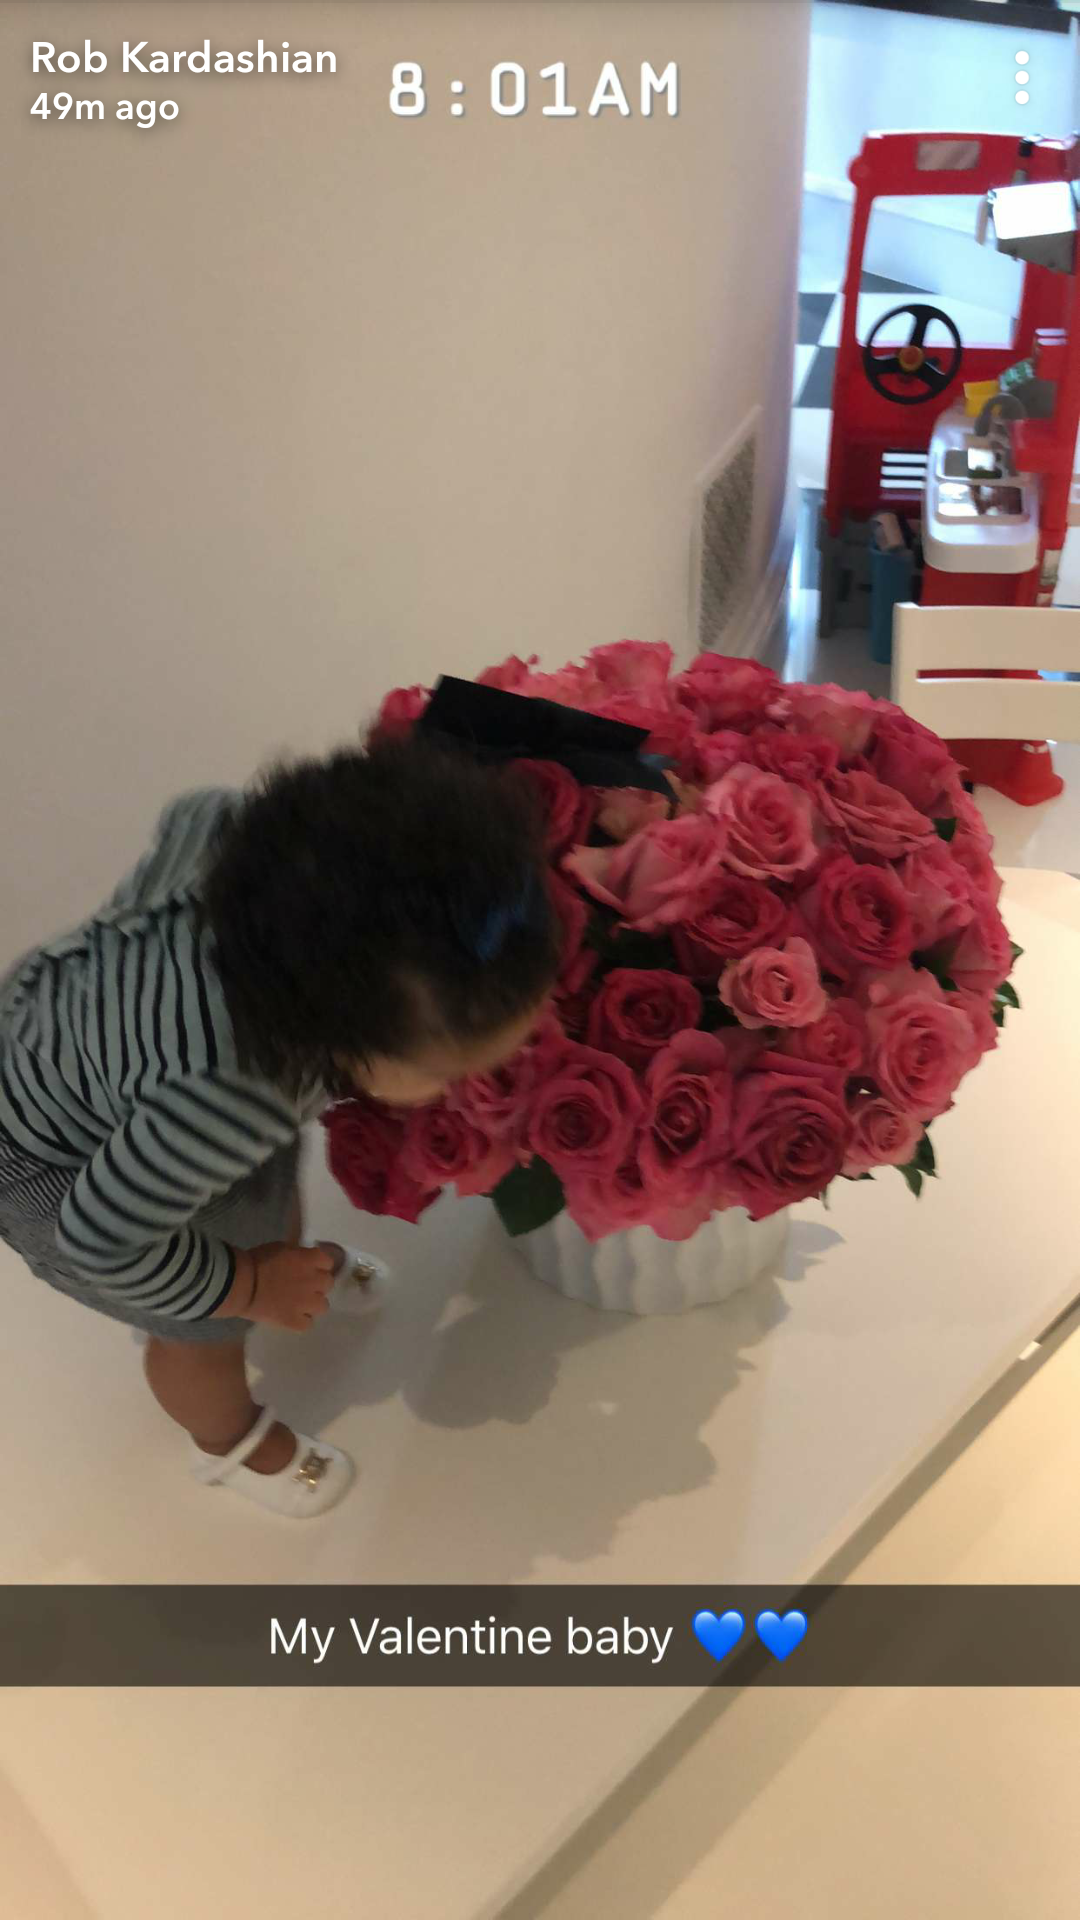 Rob Kardashian shares adorable photo of his daughter checking out a bouquet of roses